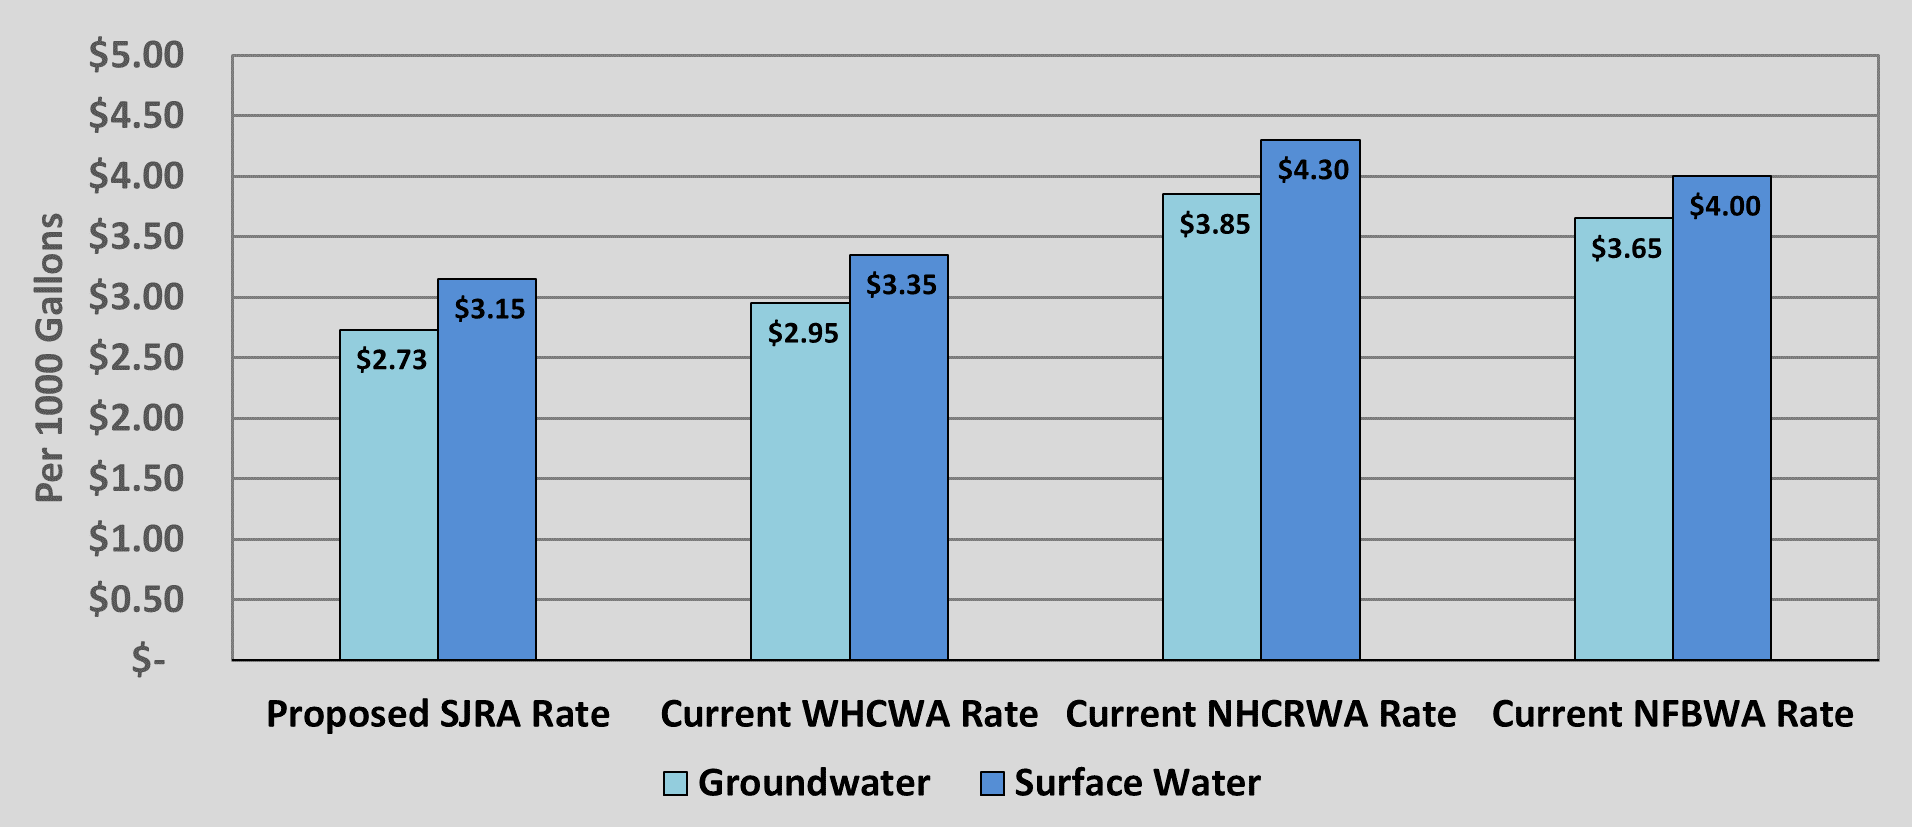 Rate Comparison to West Harris County Water Authority and North Harris County Water Authority Rates